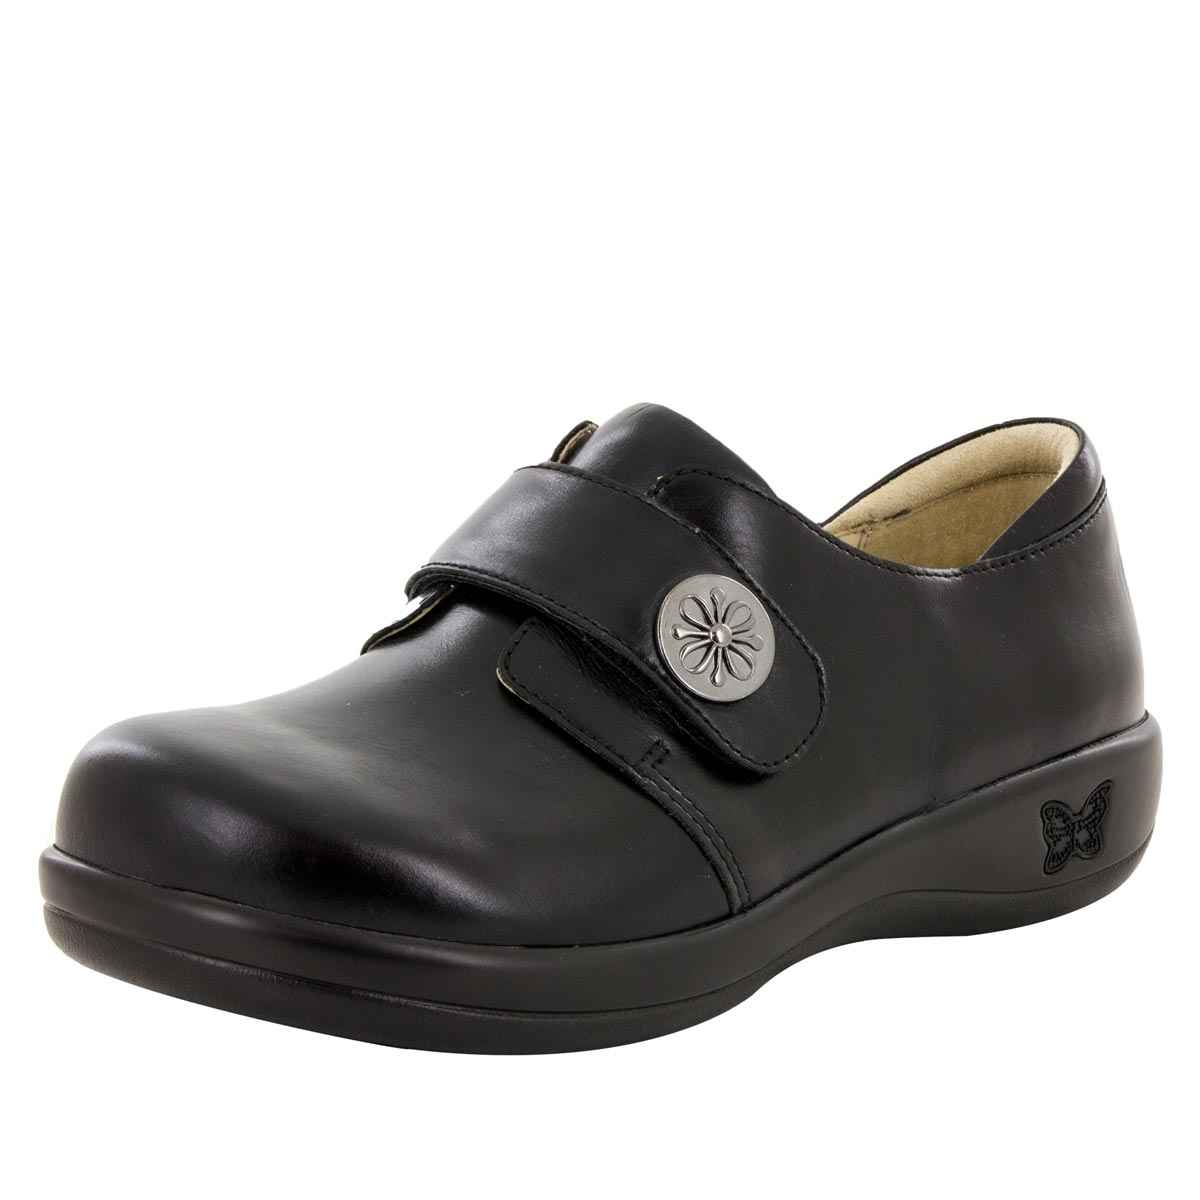 Womens Joleen Loafers Shoes (40, Jet Luster) Alegria